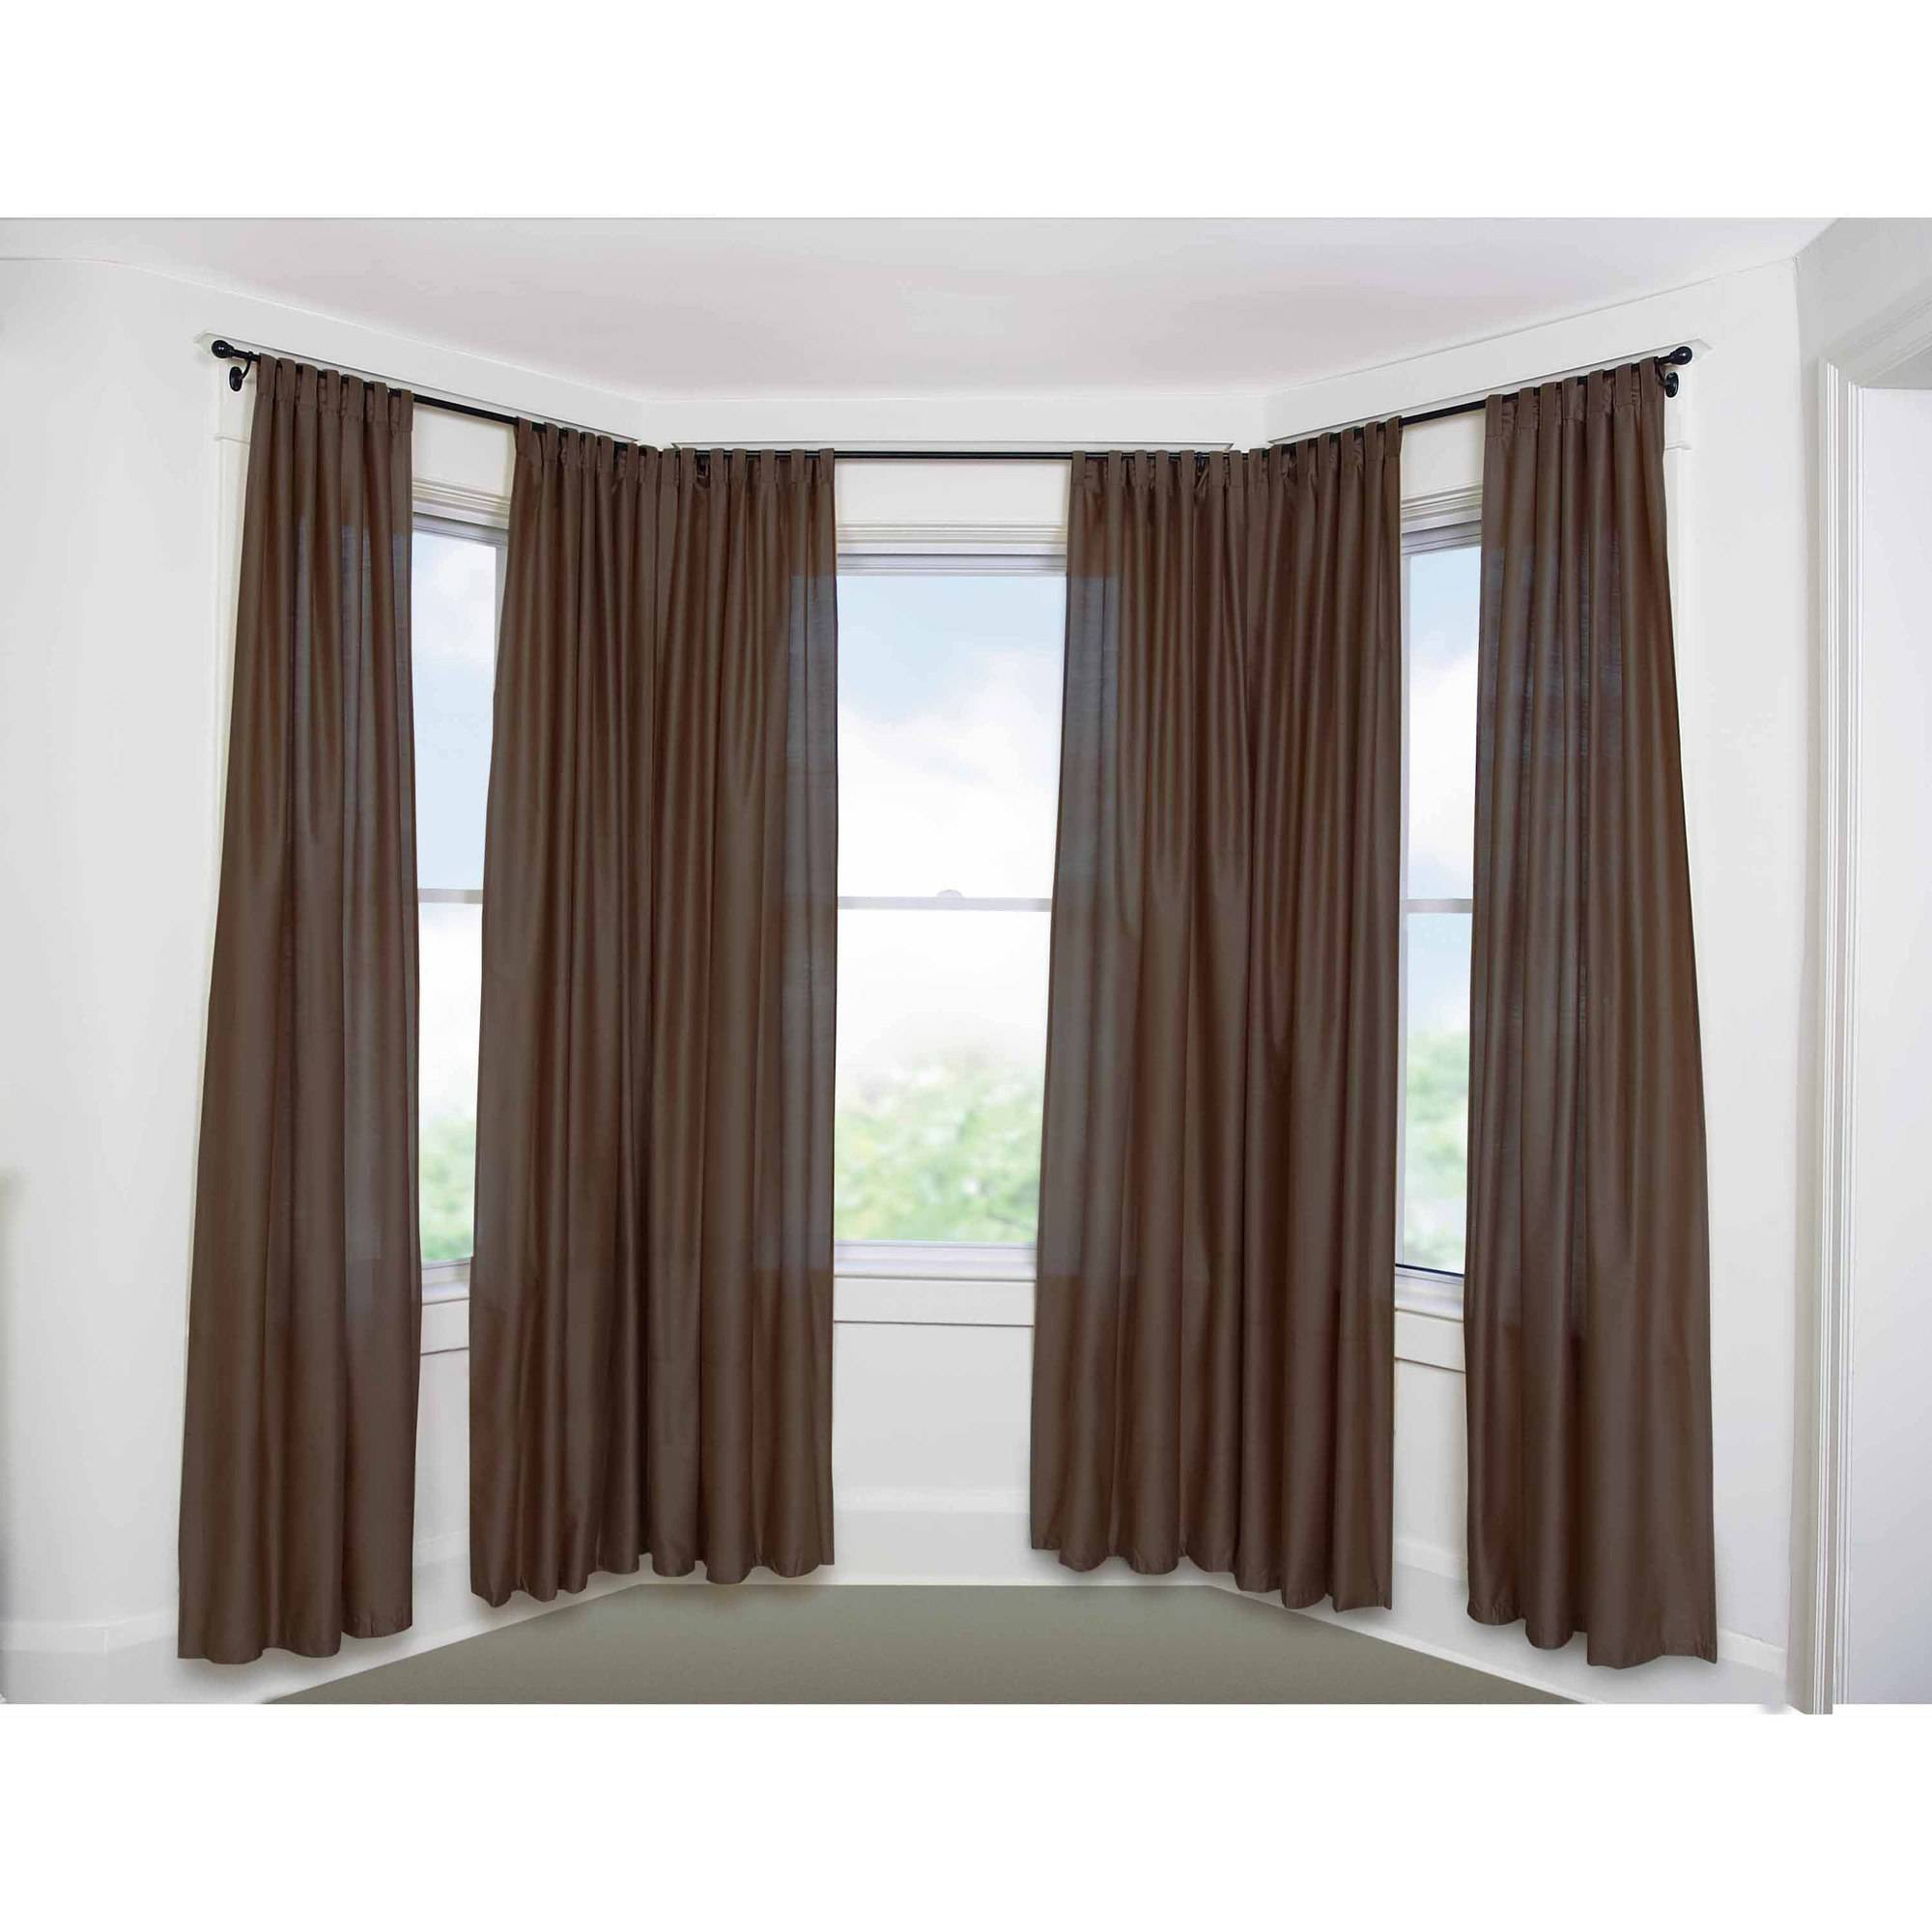 curtain tension in contemporary ideas bathroom decor exciting shower wide rod amazing throughout long with extra curtains and